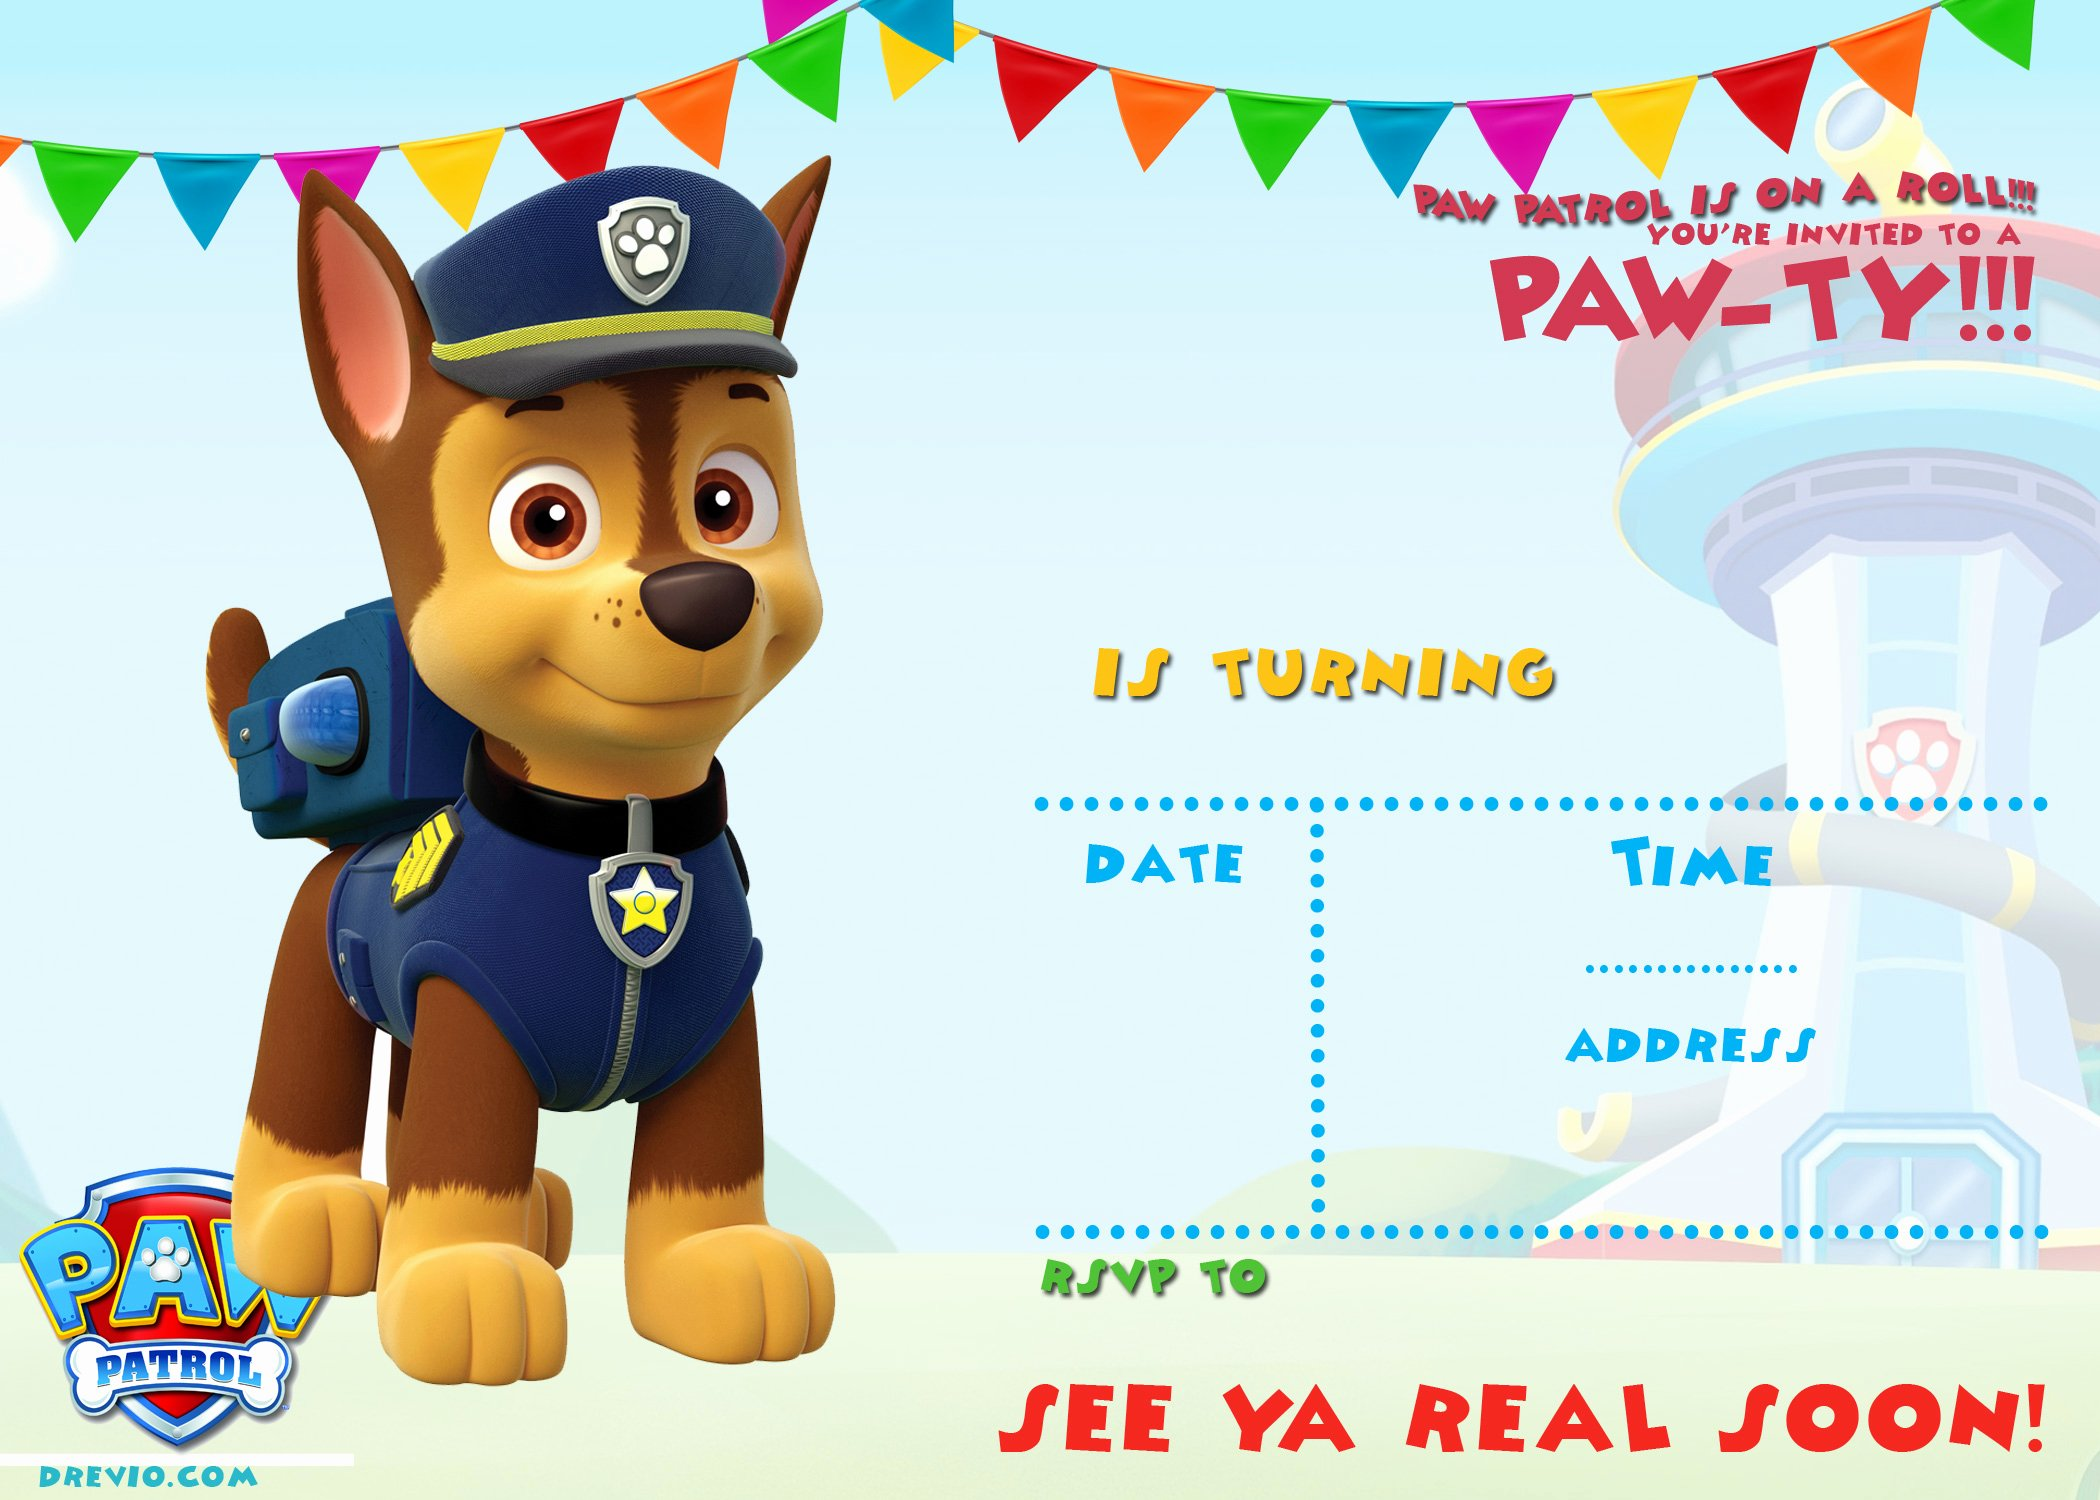 Paw Patrol Invitation Template Free Inspirational Free Printable Paw Patrol Birthday Invitation Ideas